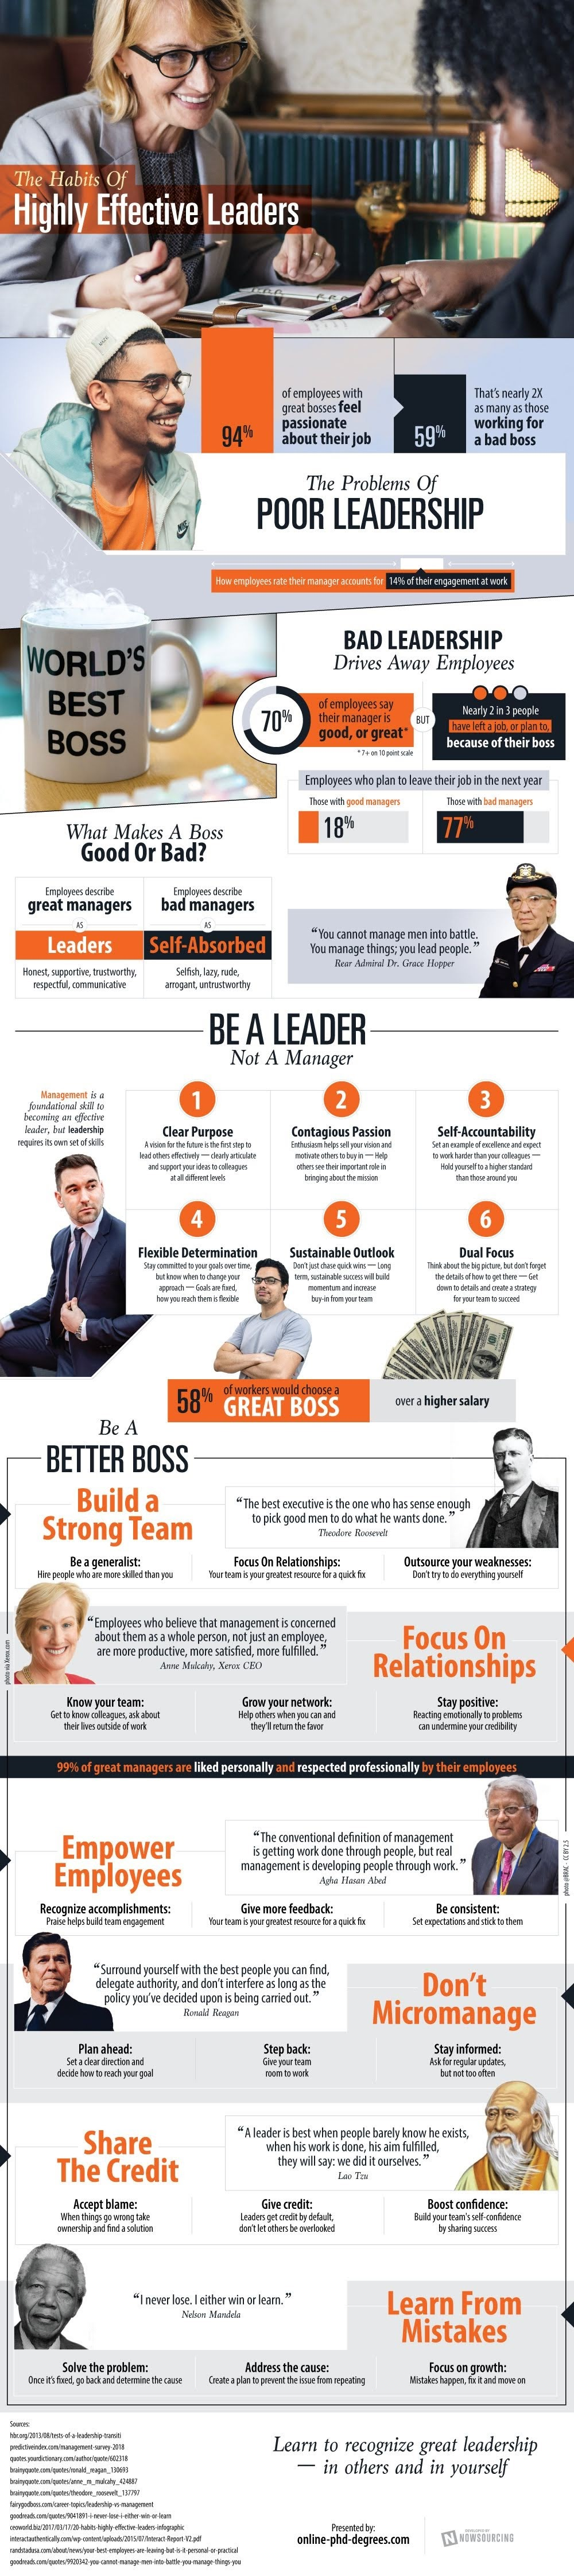 The Best Habits Of Highly Effective Leaders #infographic